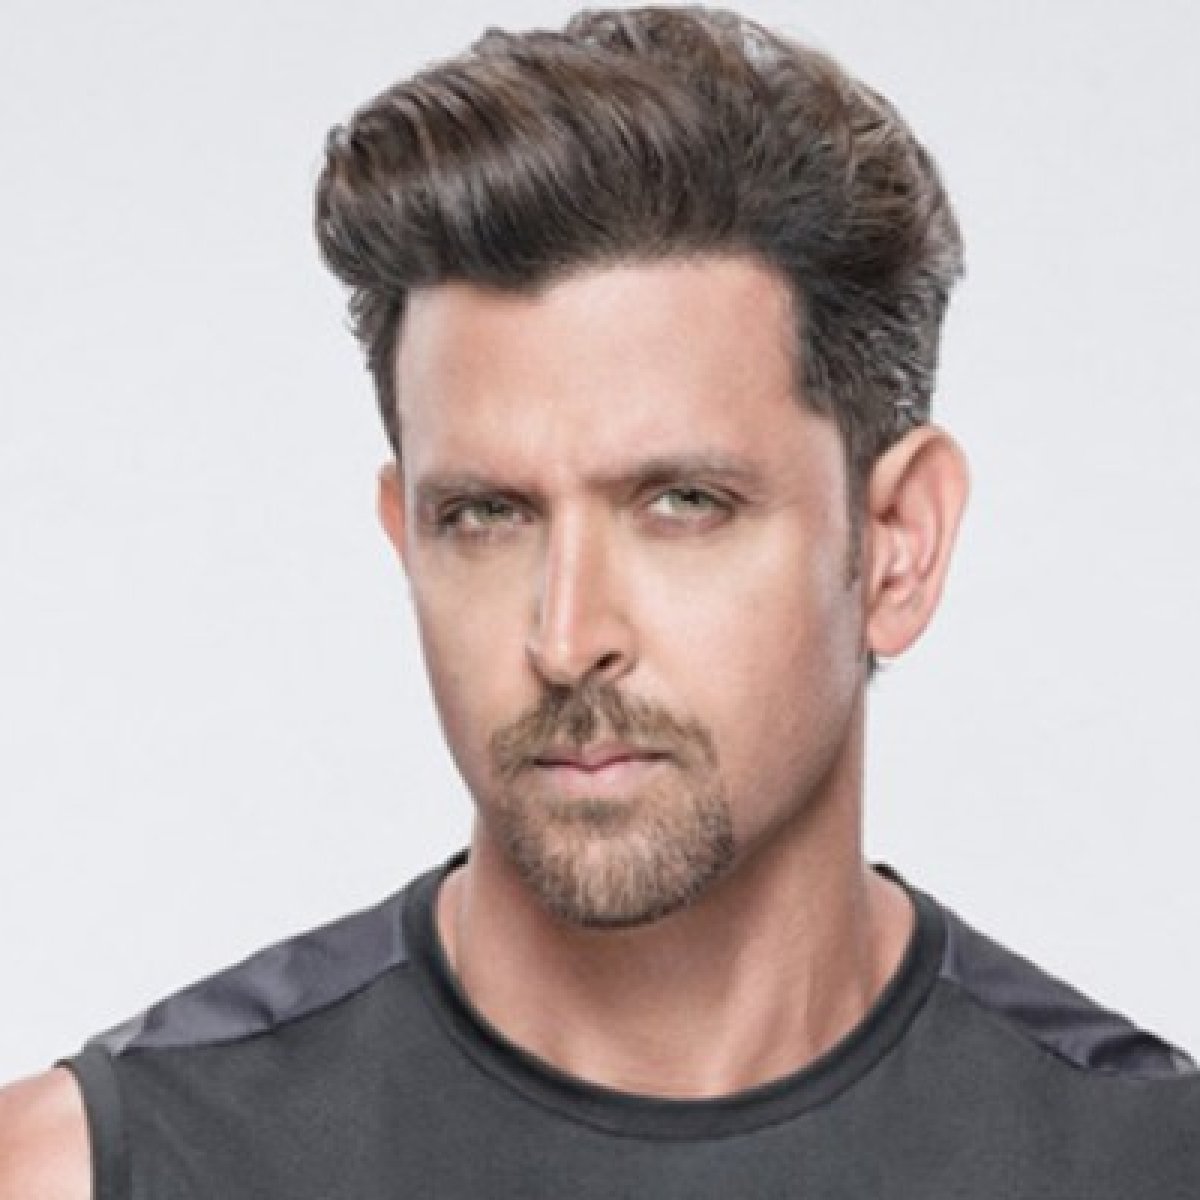 India-China border tension: Hrithik Roshan addresses sorrow over 'unrest'